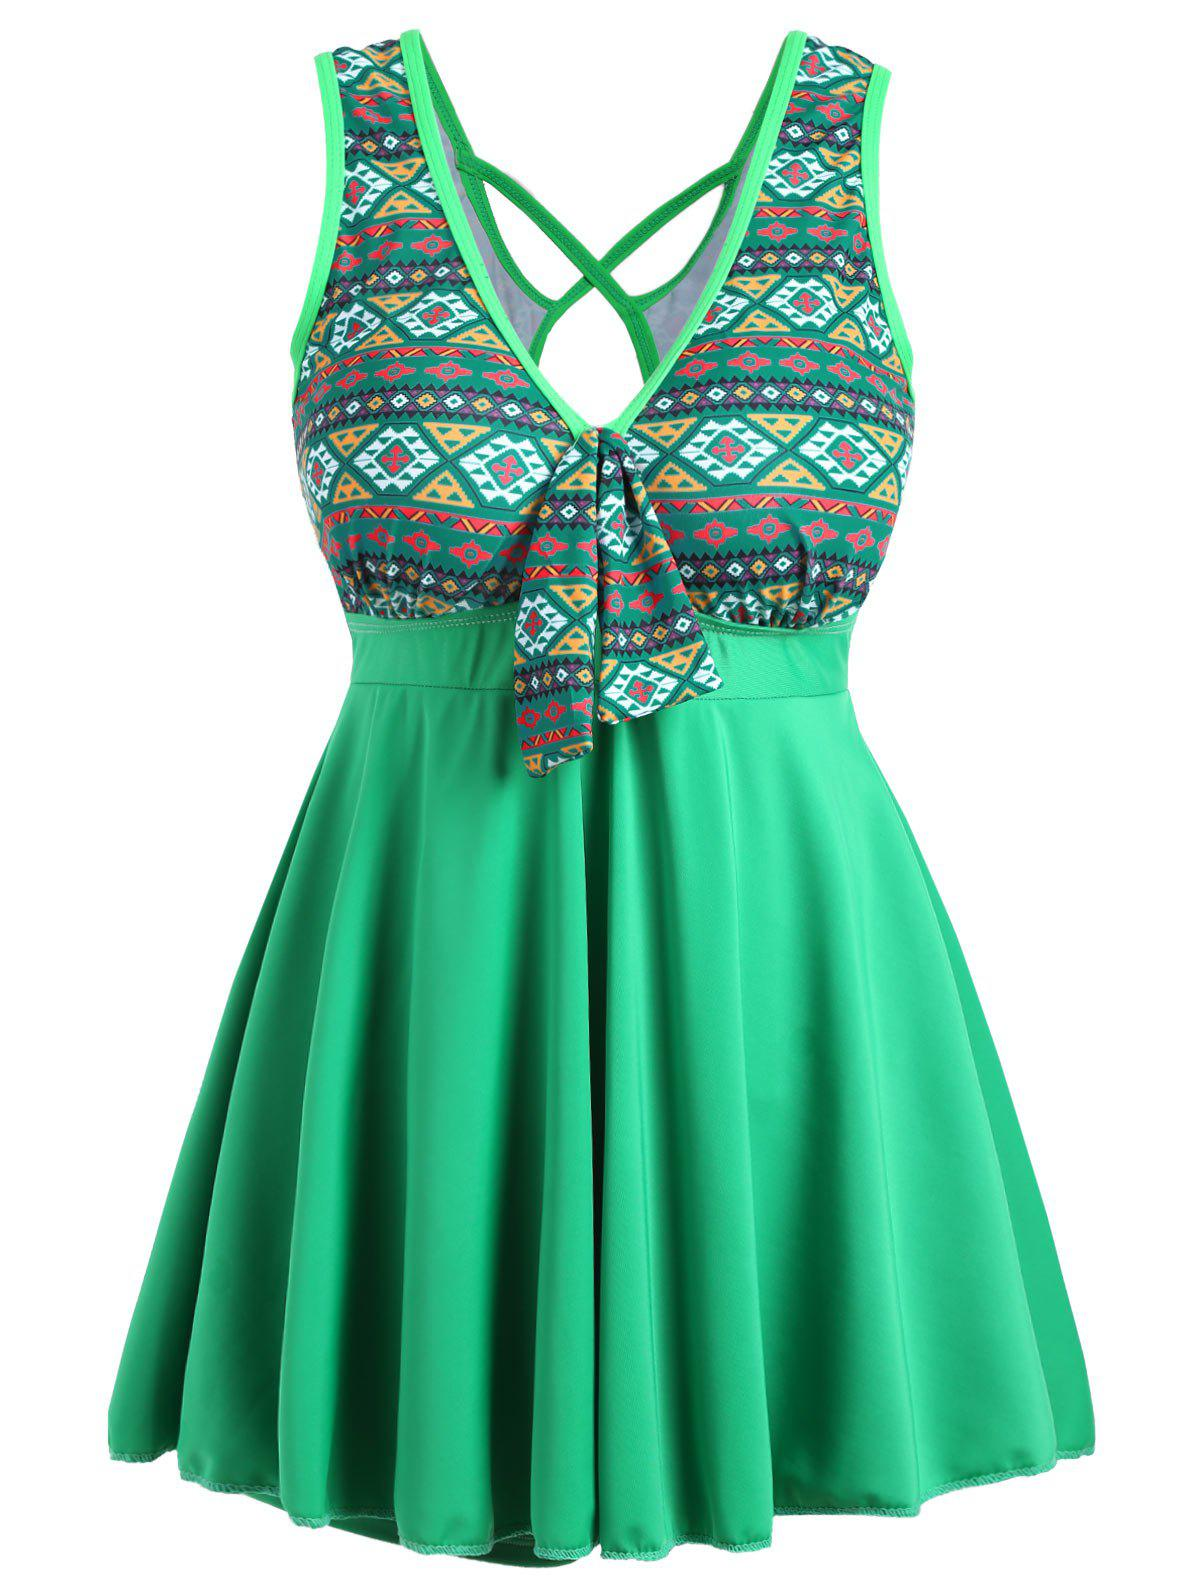 Plus Size Cross Back Skirted One Piece SwimsuitWOMEN<br><br>Size: 4XL; Color: GREEN; Gender: For Women; Swimwear Type: One Piece; Material: Polyester,Spandex; Bra Style: Padded; Support Type: Wire Free; Pattern Type: Geometric; Embellishment: Criss-Cross,Hollow Out; Waist: Natural; Elasticity: Micro-elastic; Weight: 0.3500kg; Package Contents: 1 x Swimsuit;